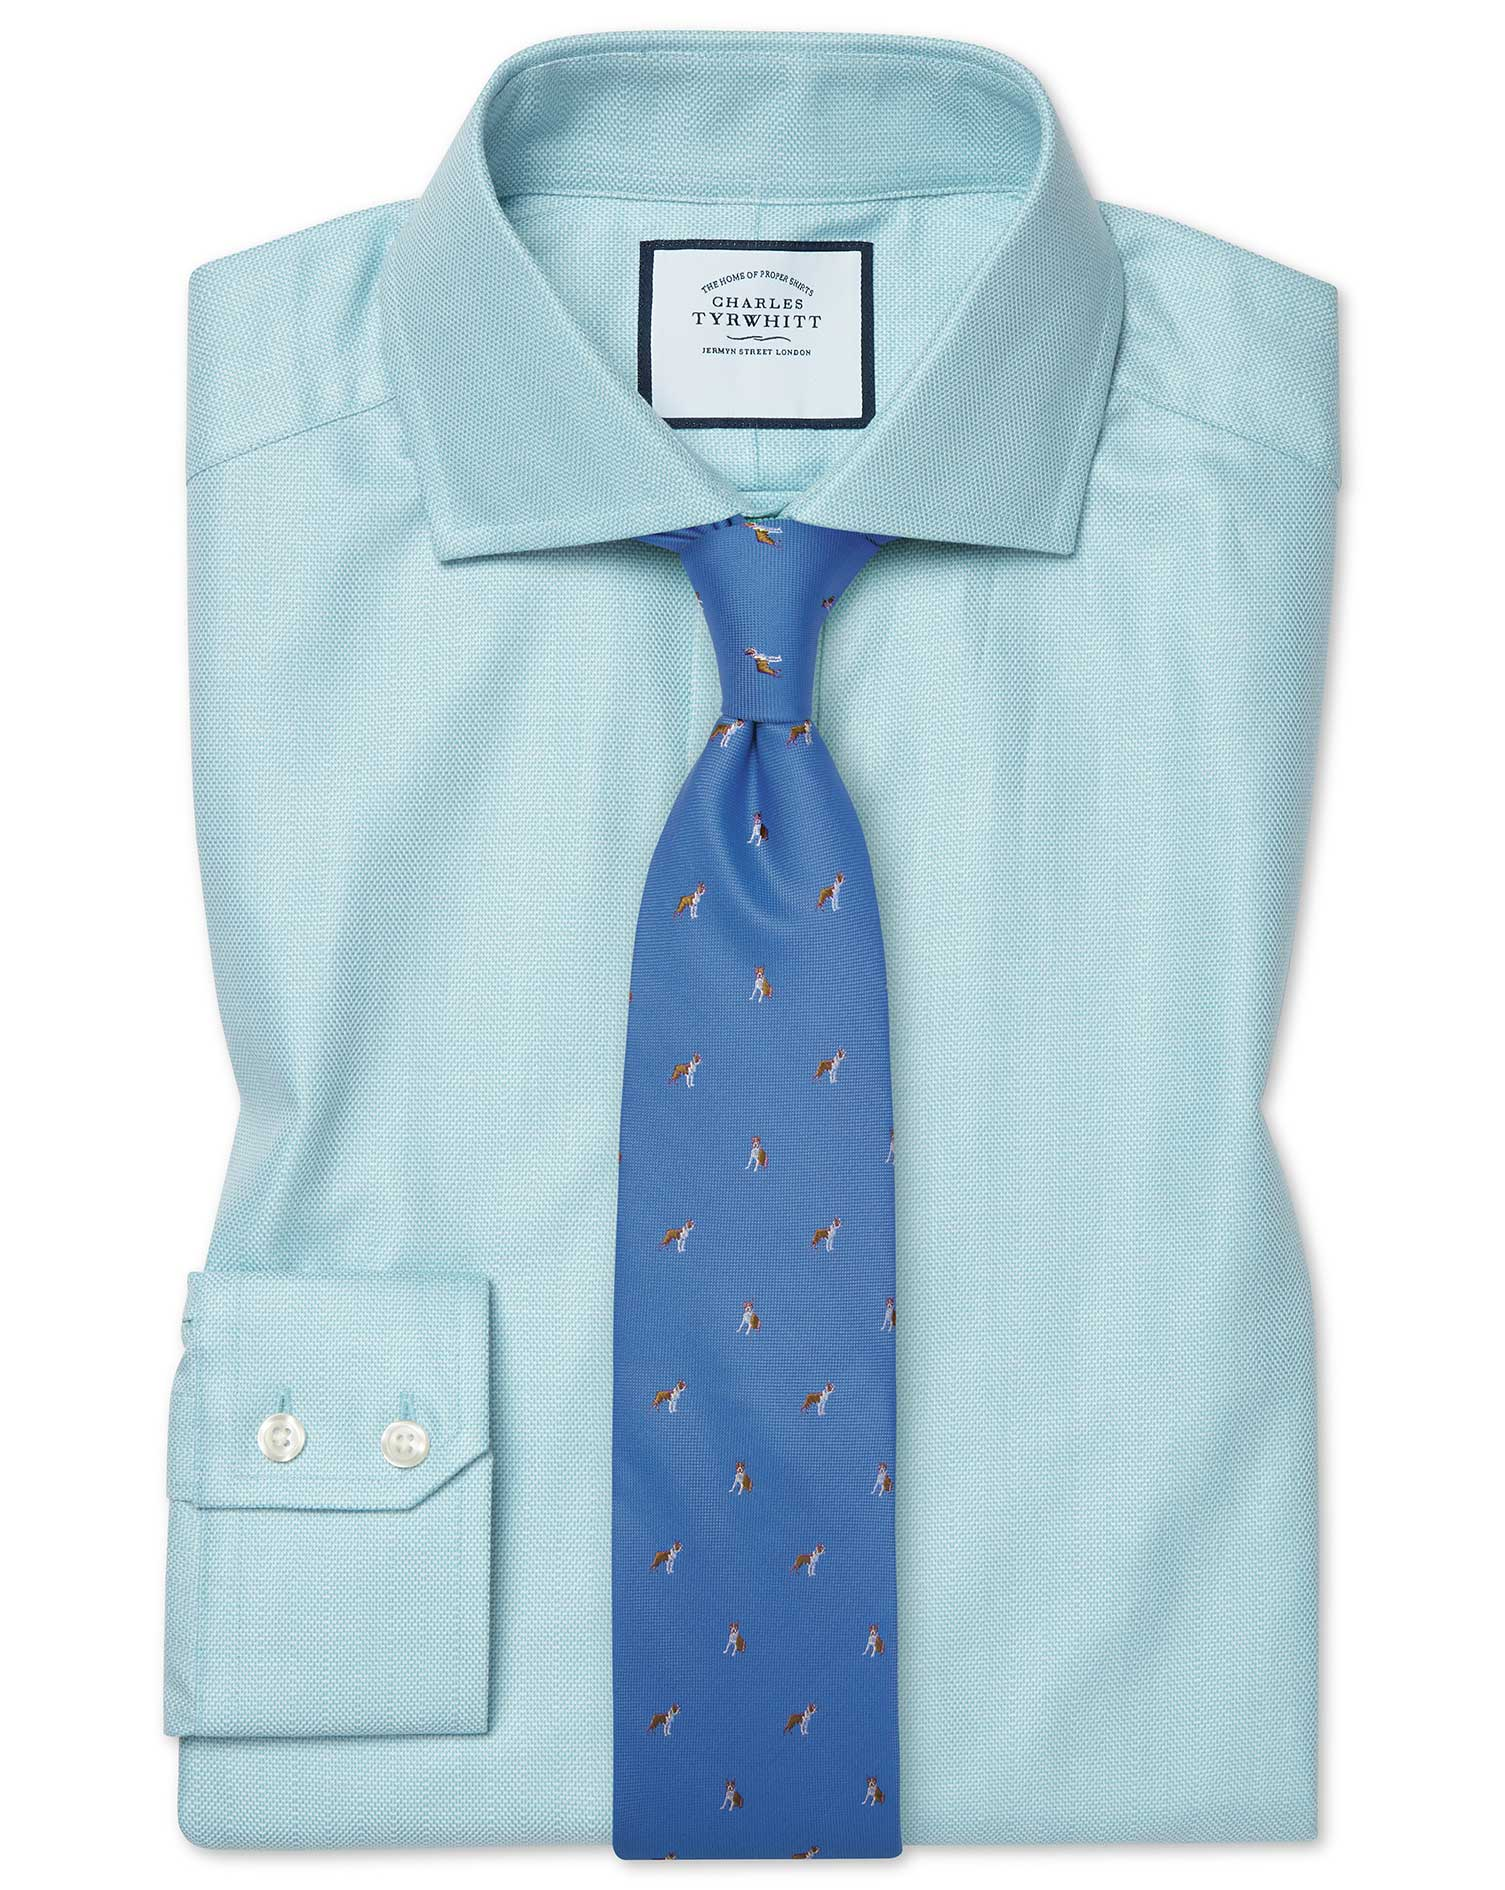 Cotton Tencel Slim Fit Cutaway Cotton Stretch With Tencel™ Teal Shirt